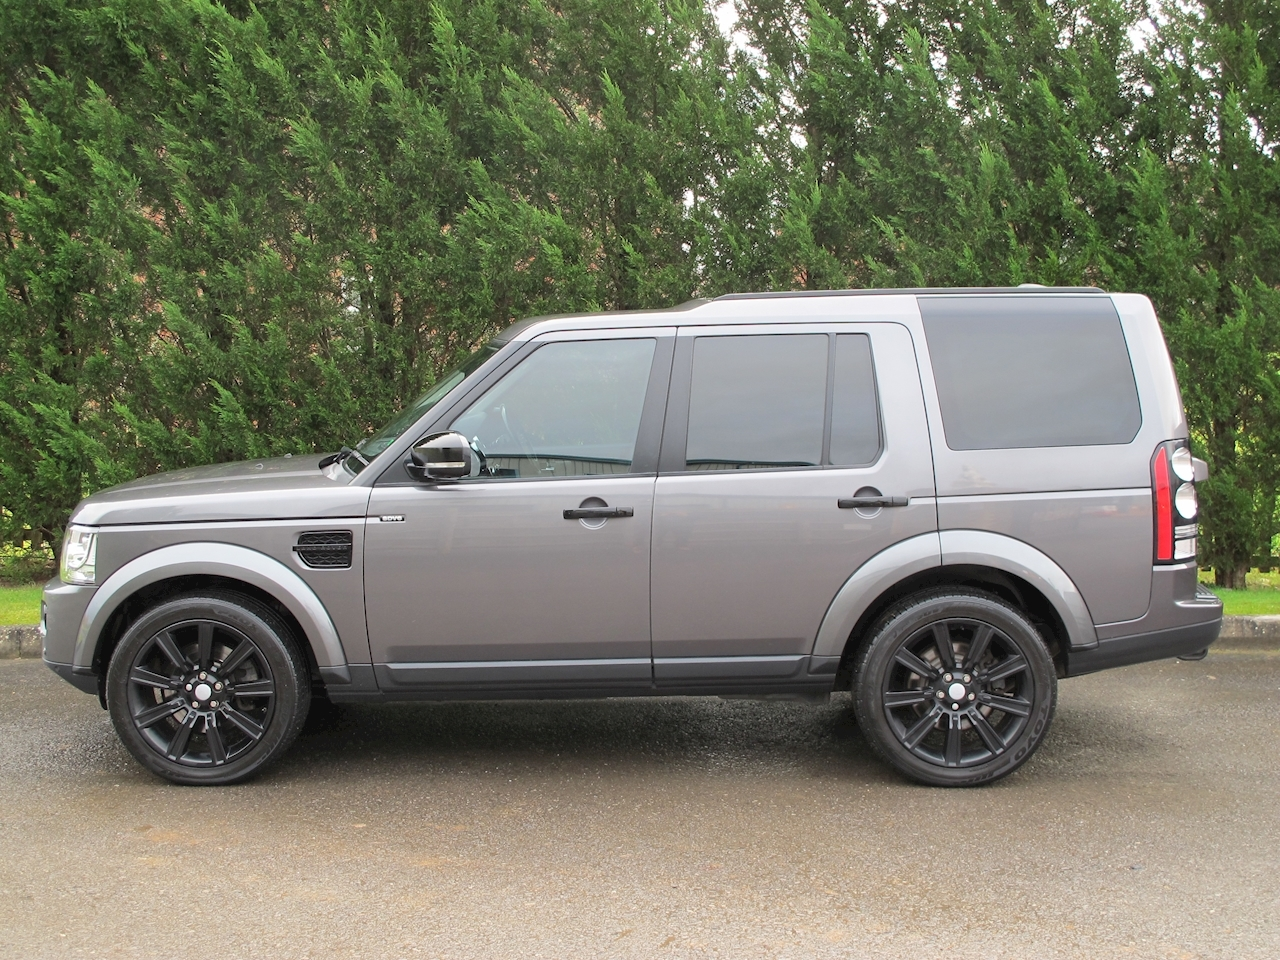 Land Rover Discovery 4 Commercial XS 3.0 5dr Panel Van Automatic Diesel